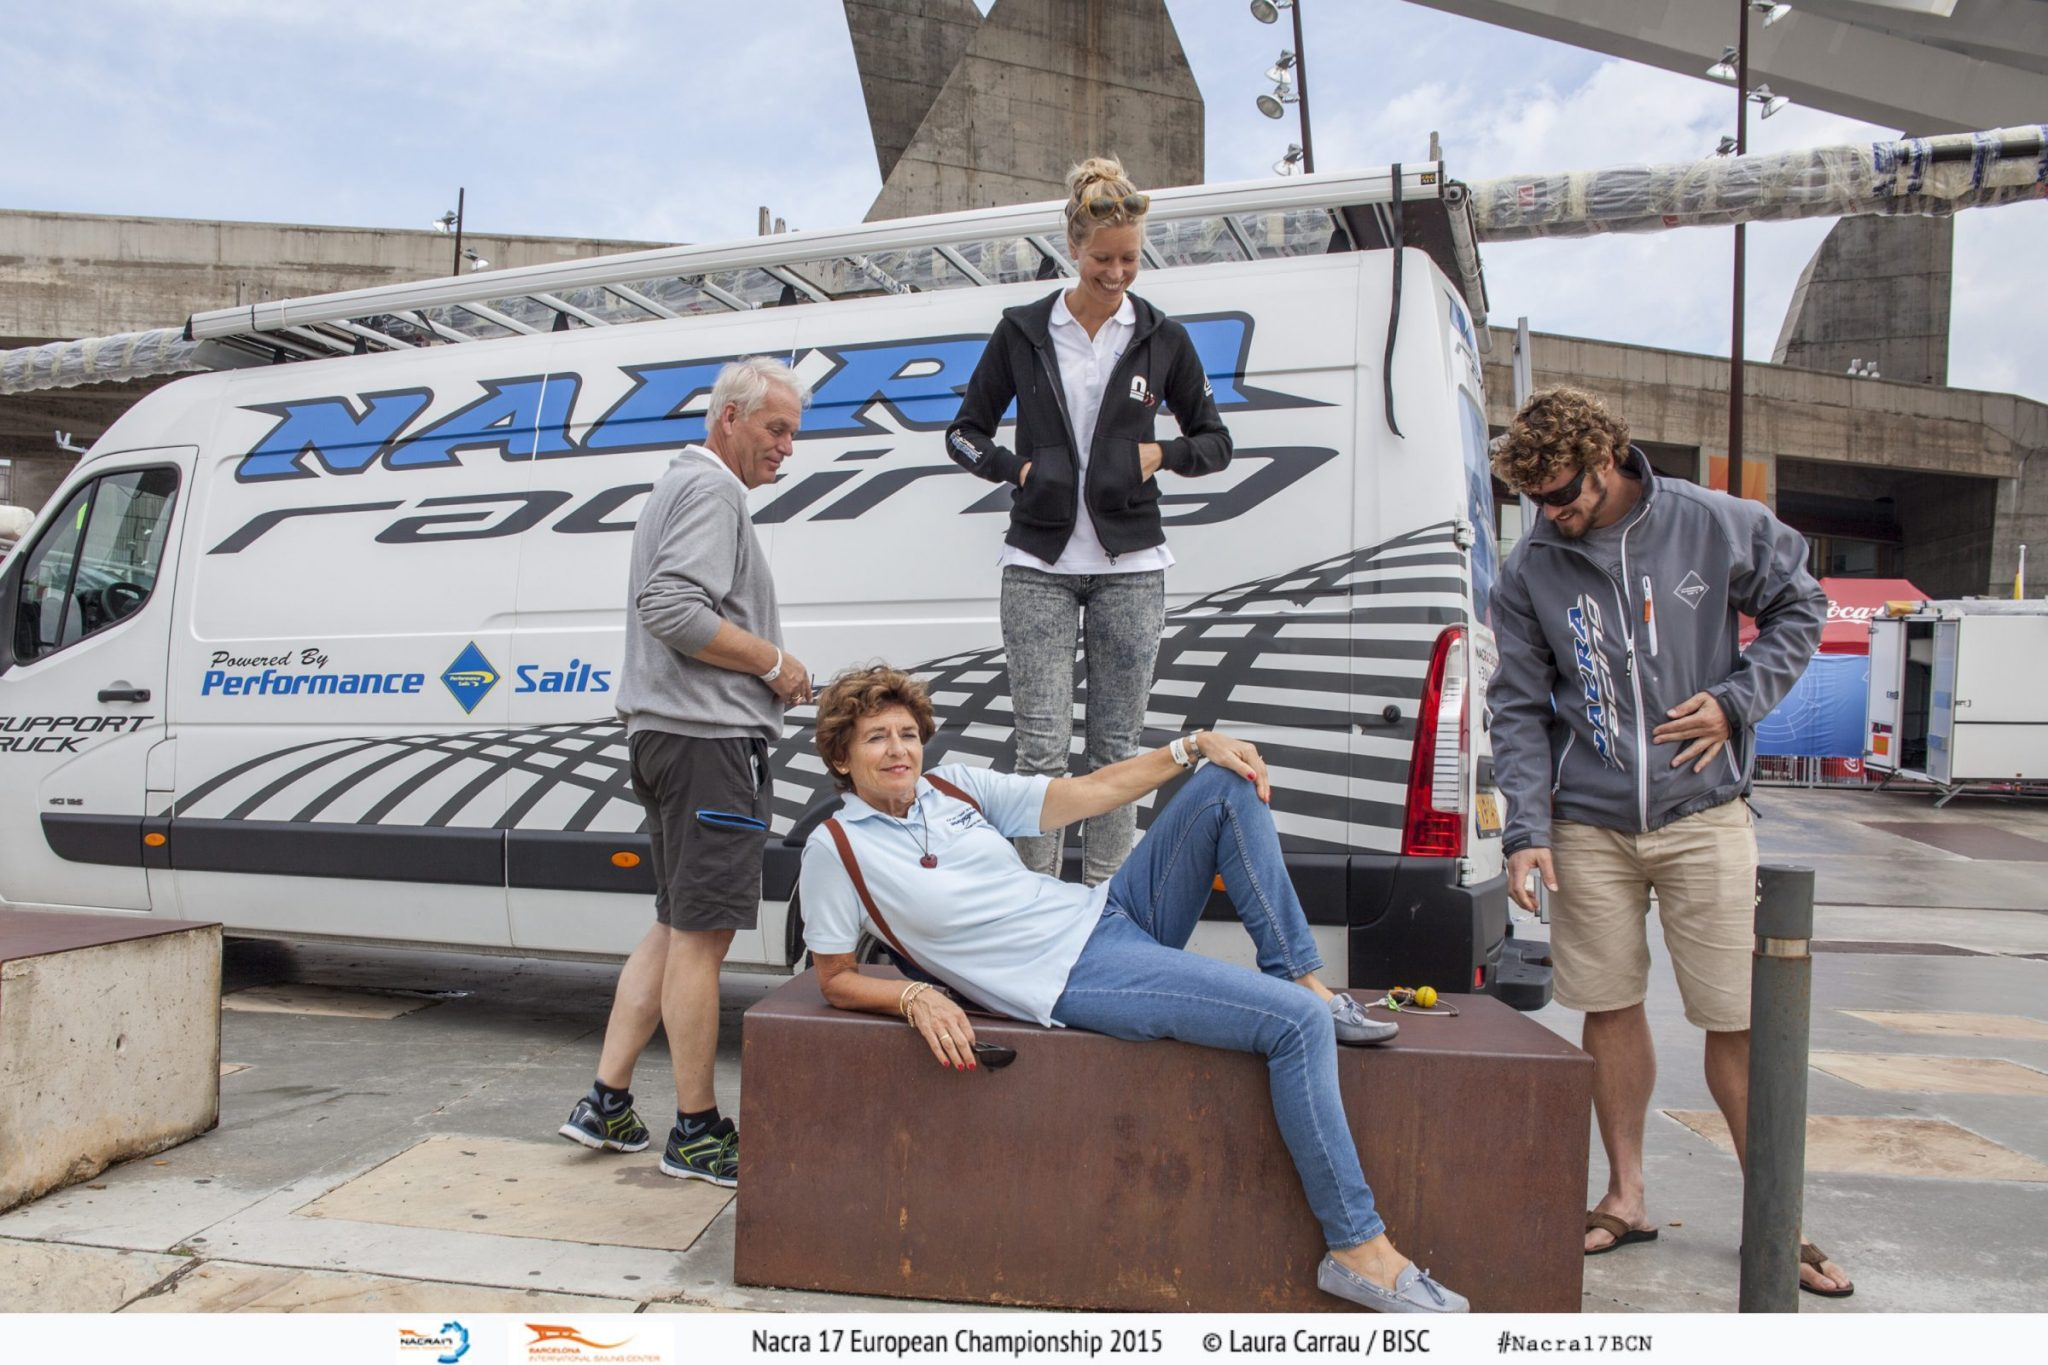 Hestag International - Working at the Nacra17 European Championships in Barcelona